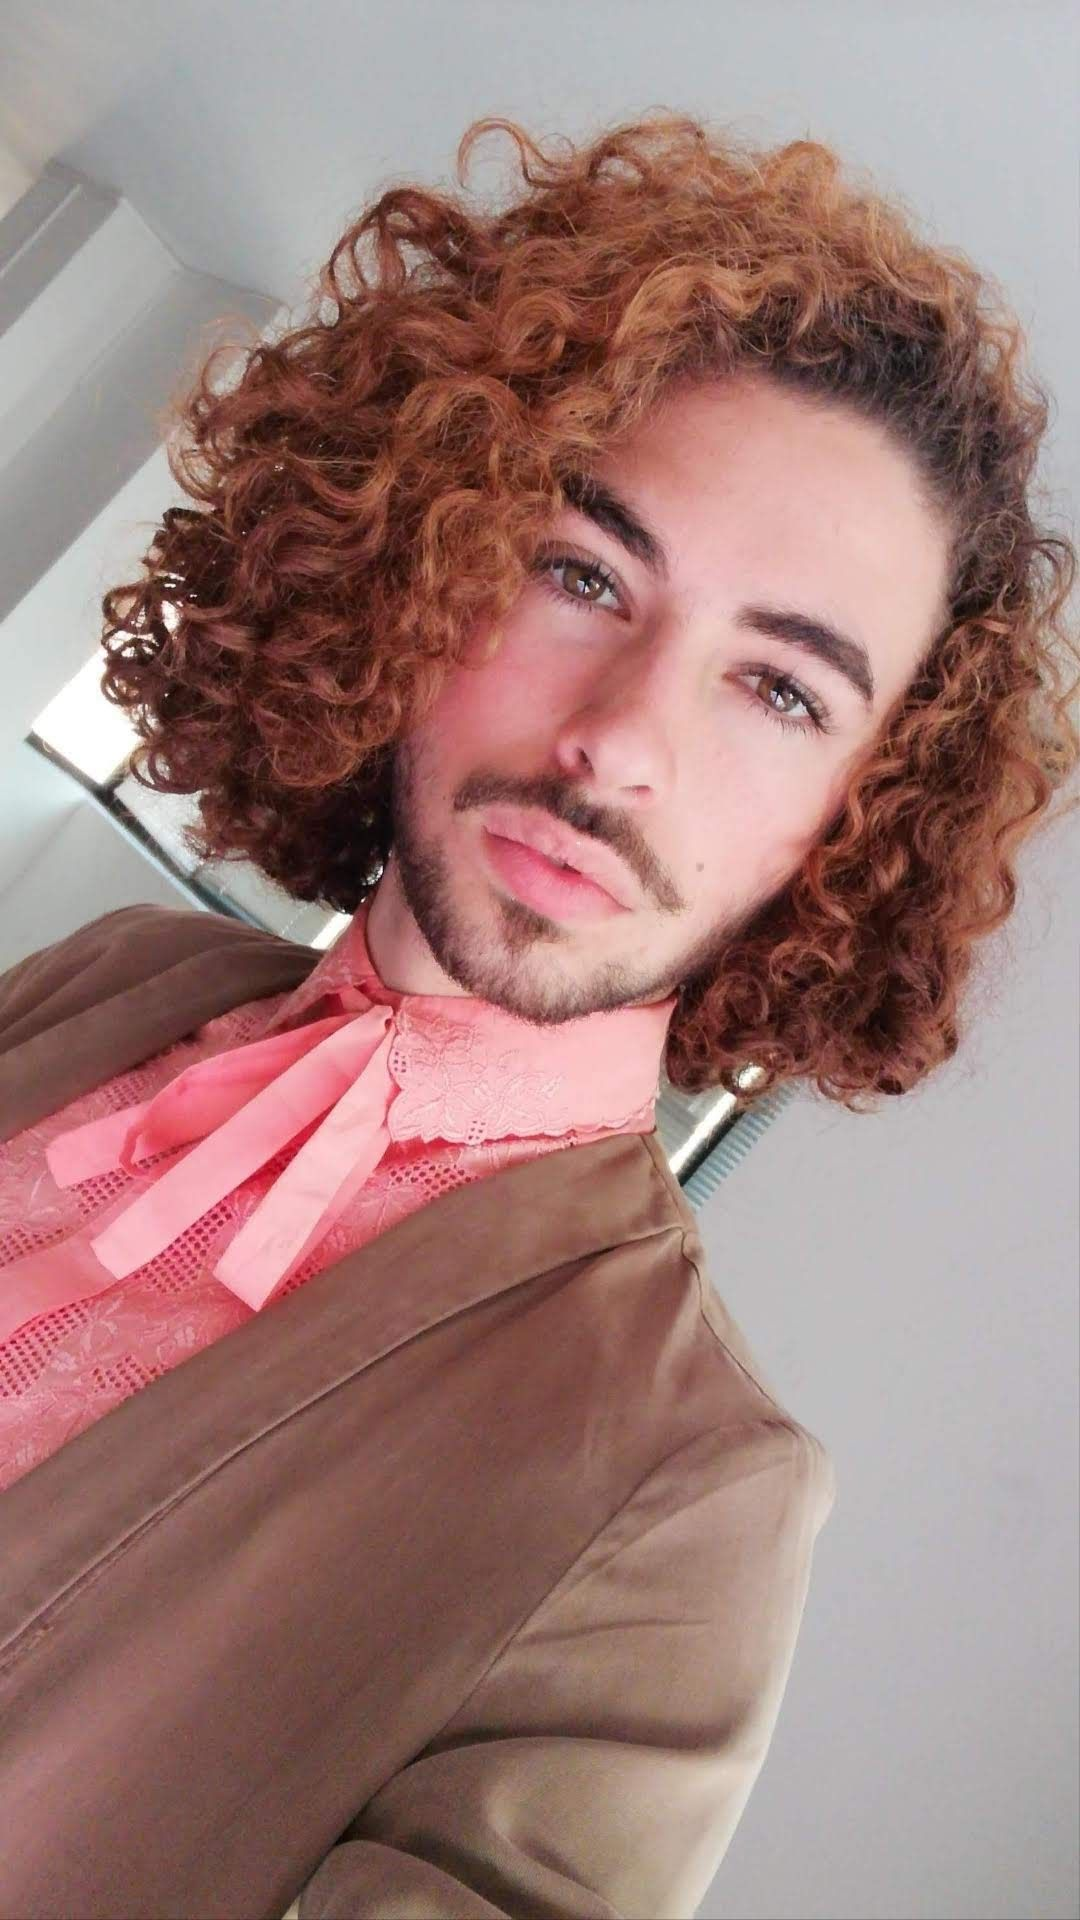 Curly unisex hairstyle in 2020   Short curly hair, Hairstyle, Short hair styles